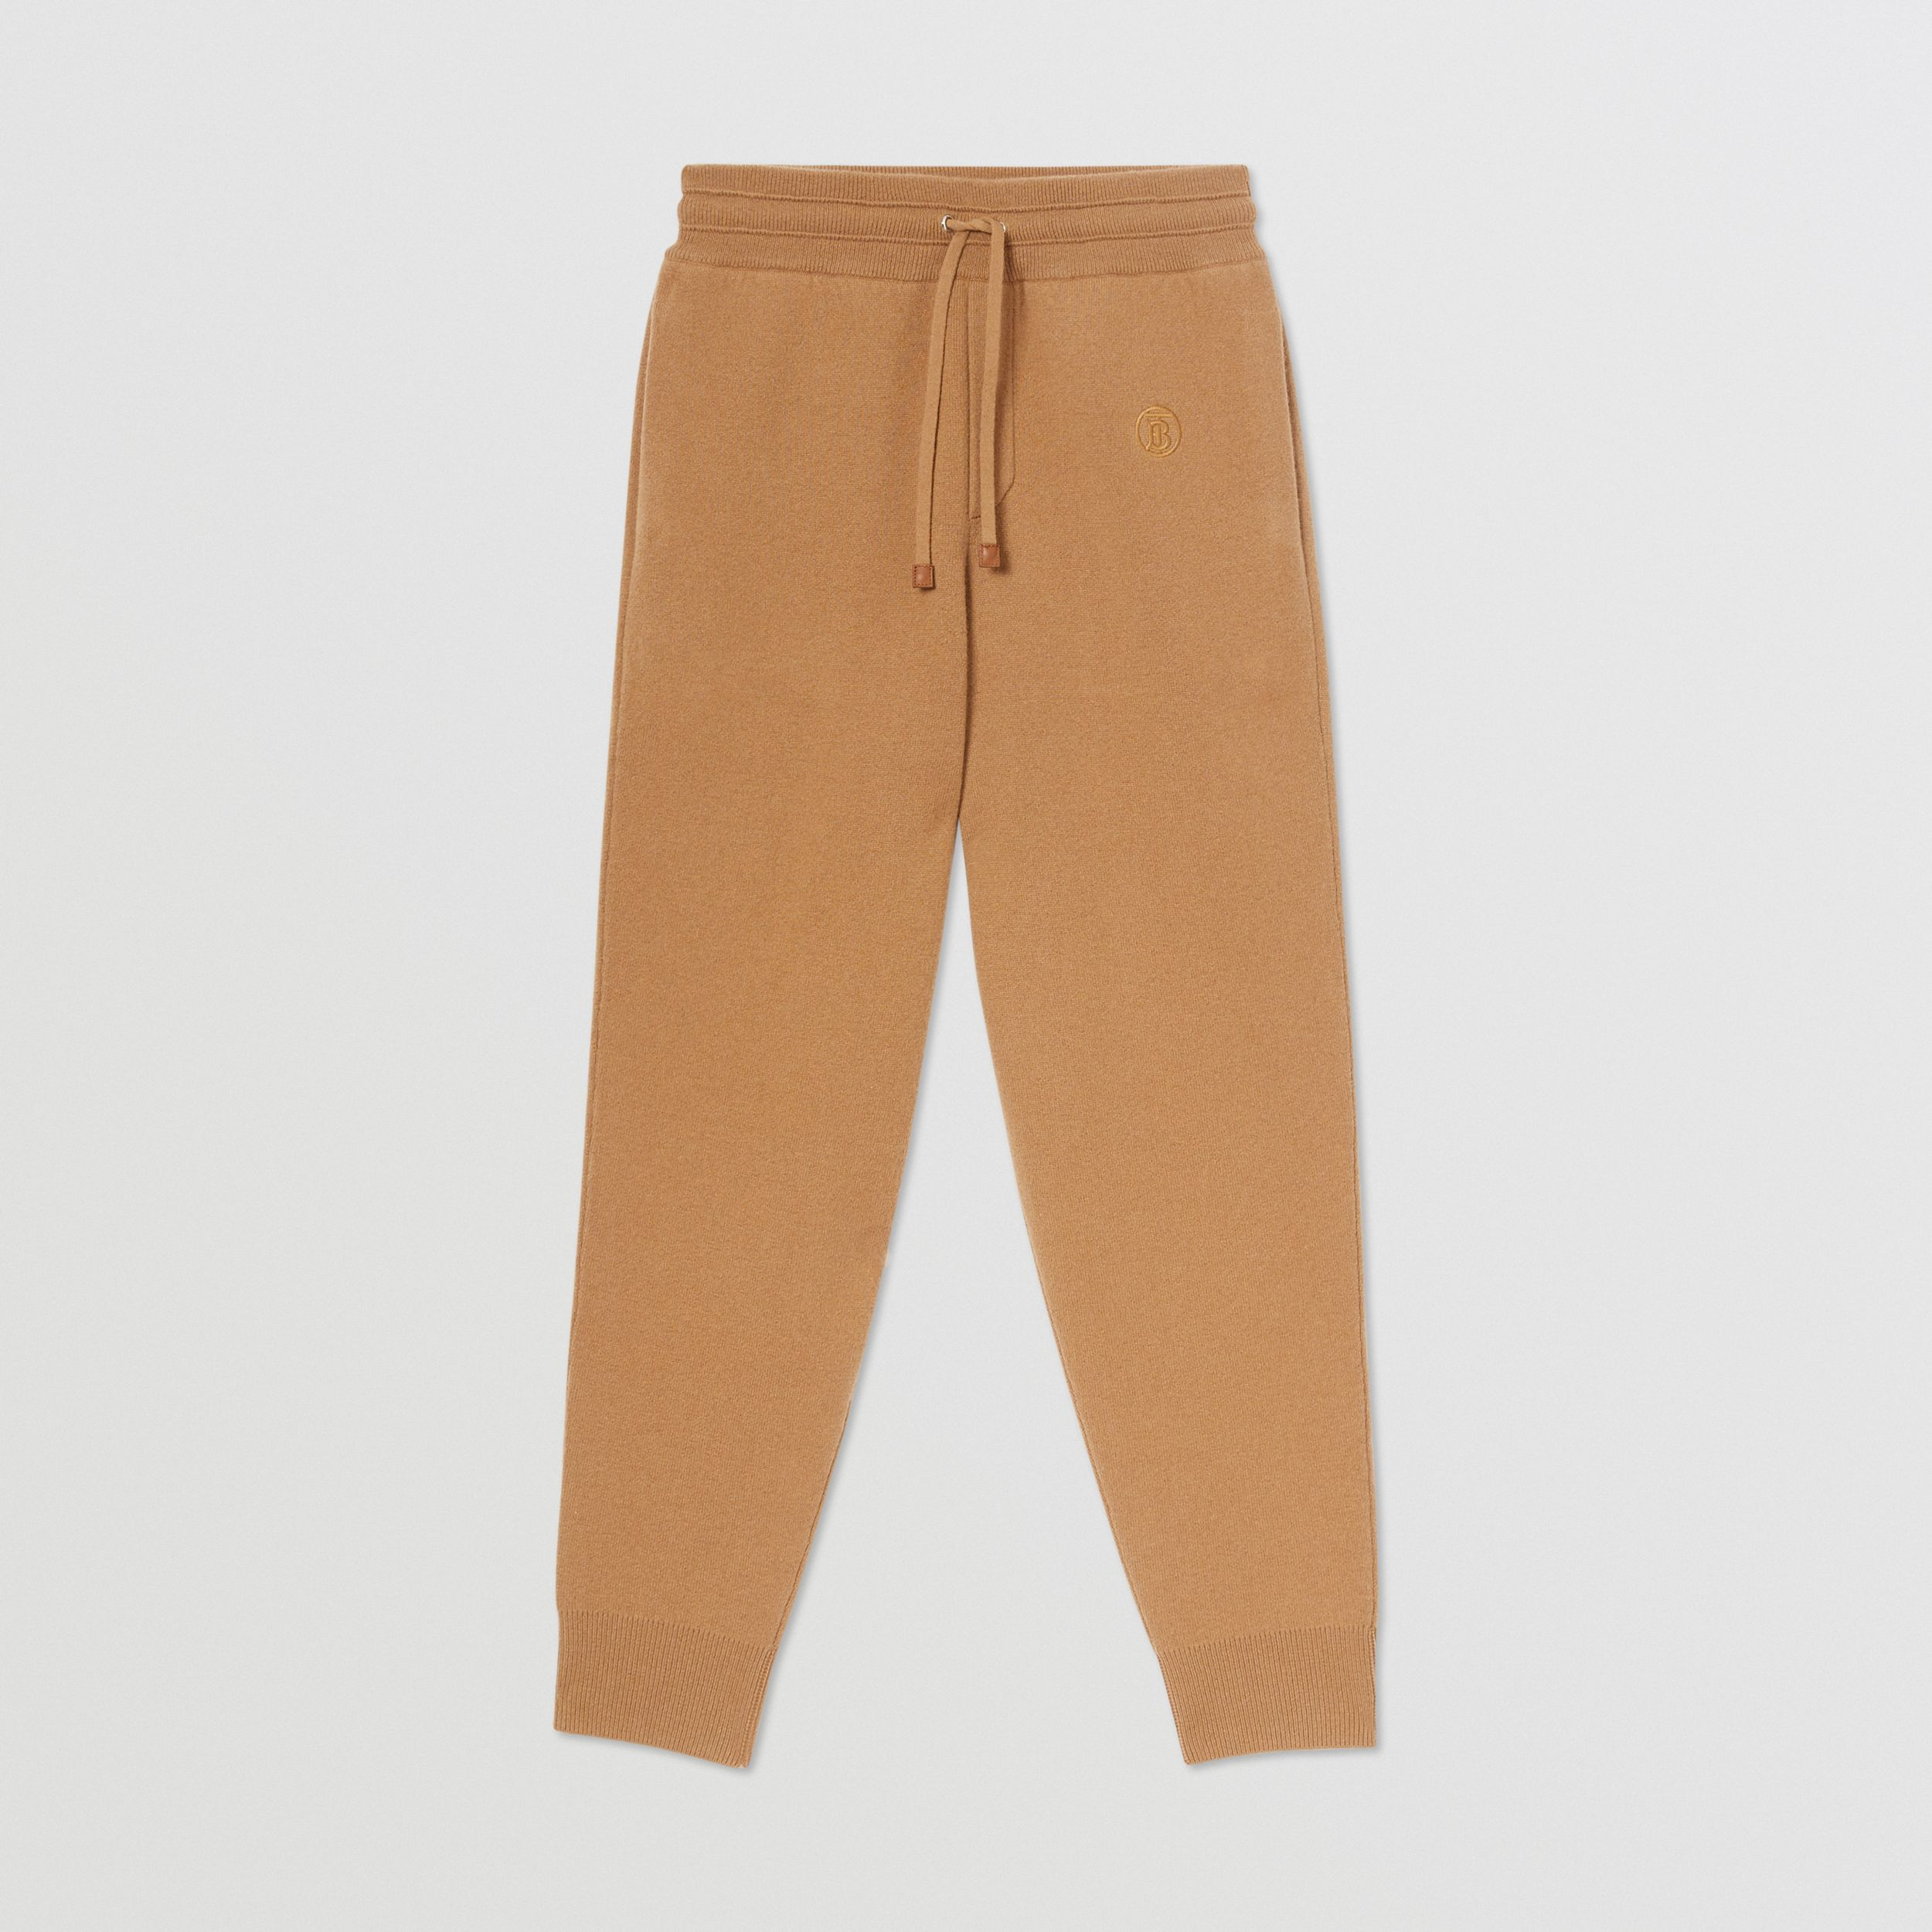 Monogram Motif Cashmere Blend Jogging Pants in Camel - Women | Burberry - 4